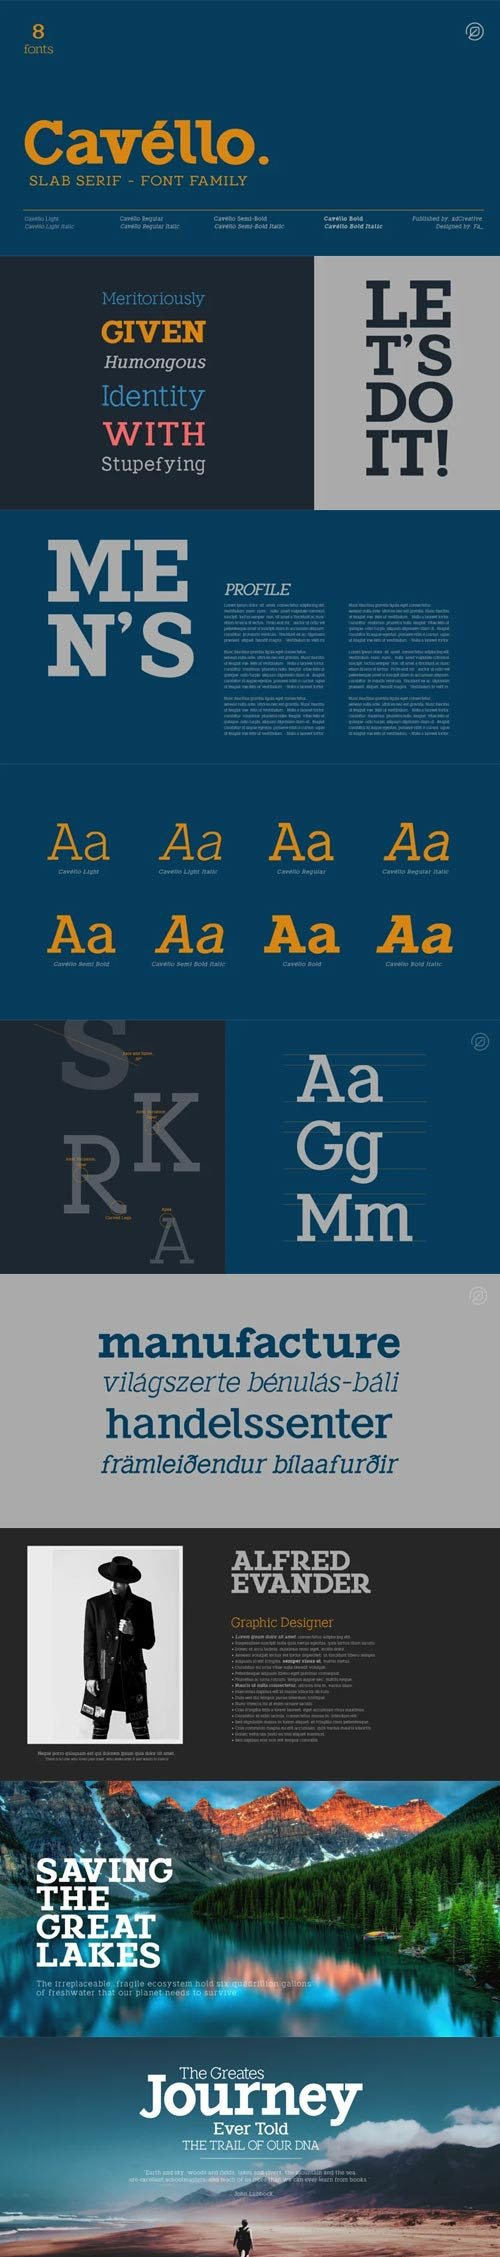 Cavello - Slab Serif Font Family [8-Weights]